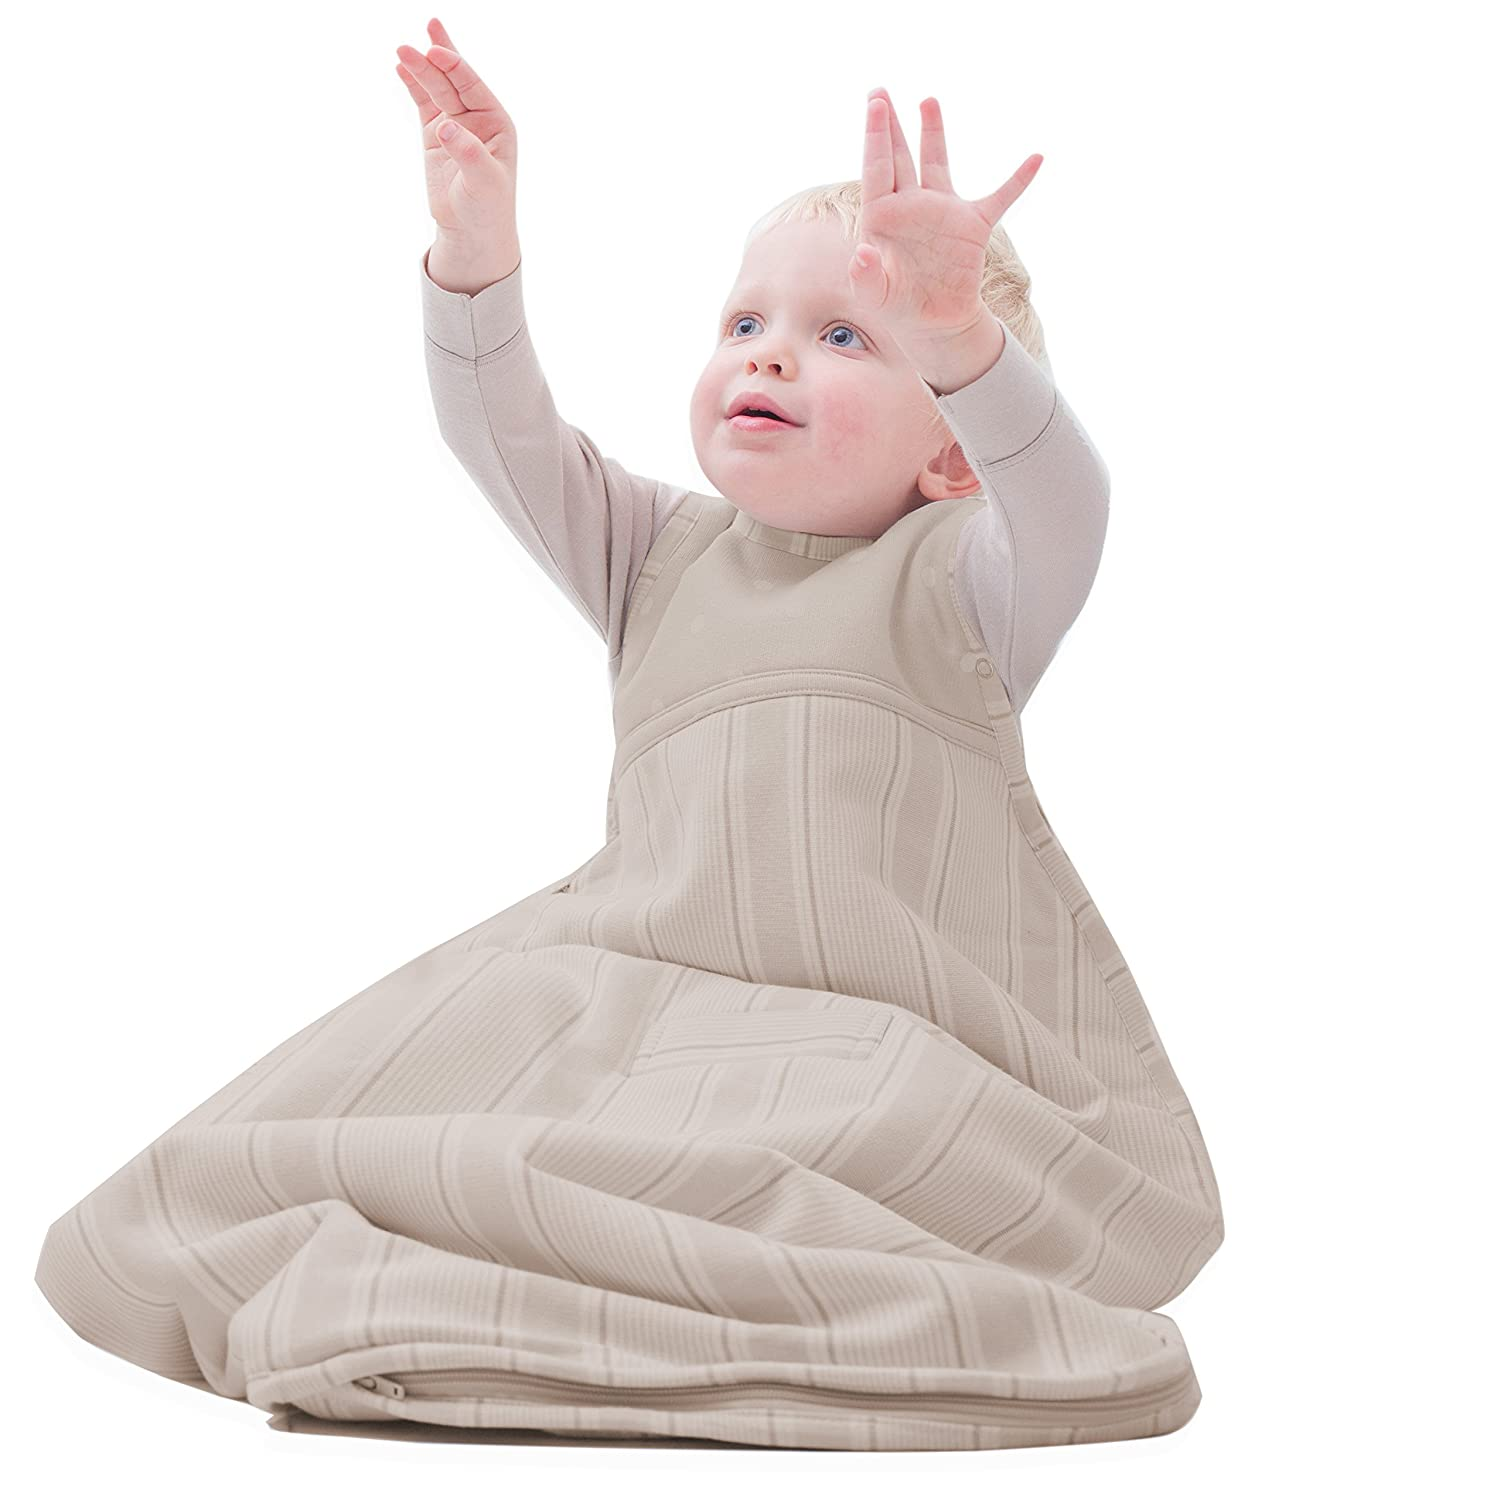 39424d2db Amazon.com  Merino Kids Winter Sherpa-Weight Baby Sleep Bag For ...